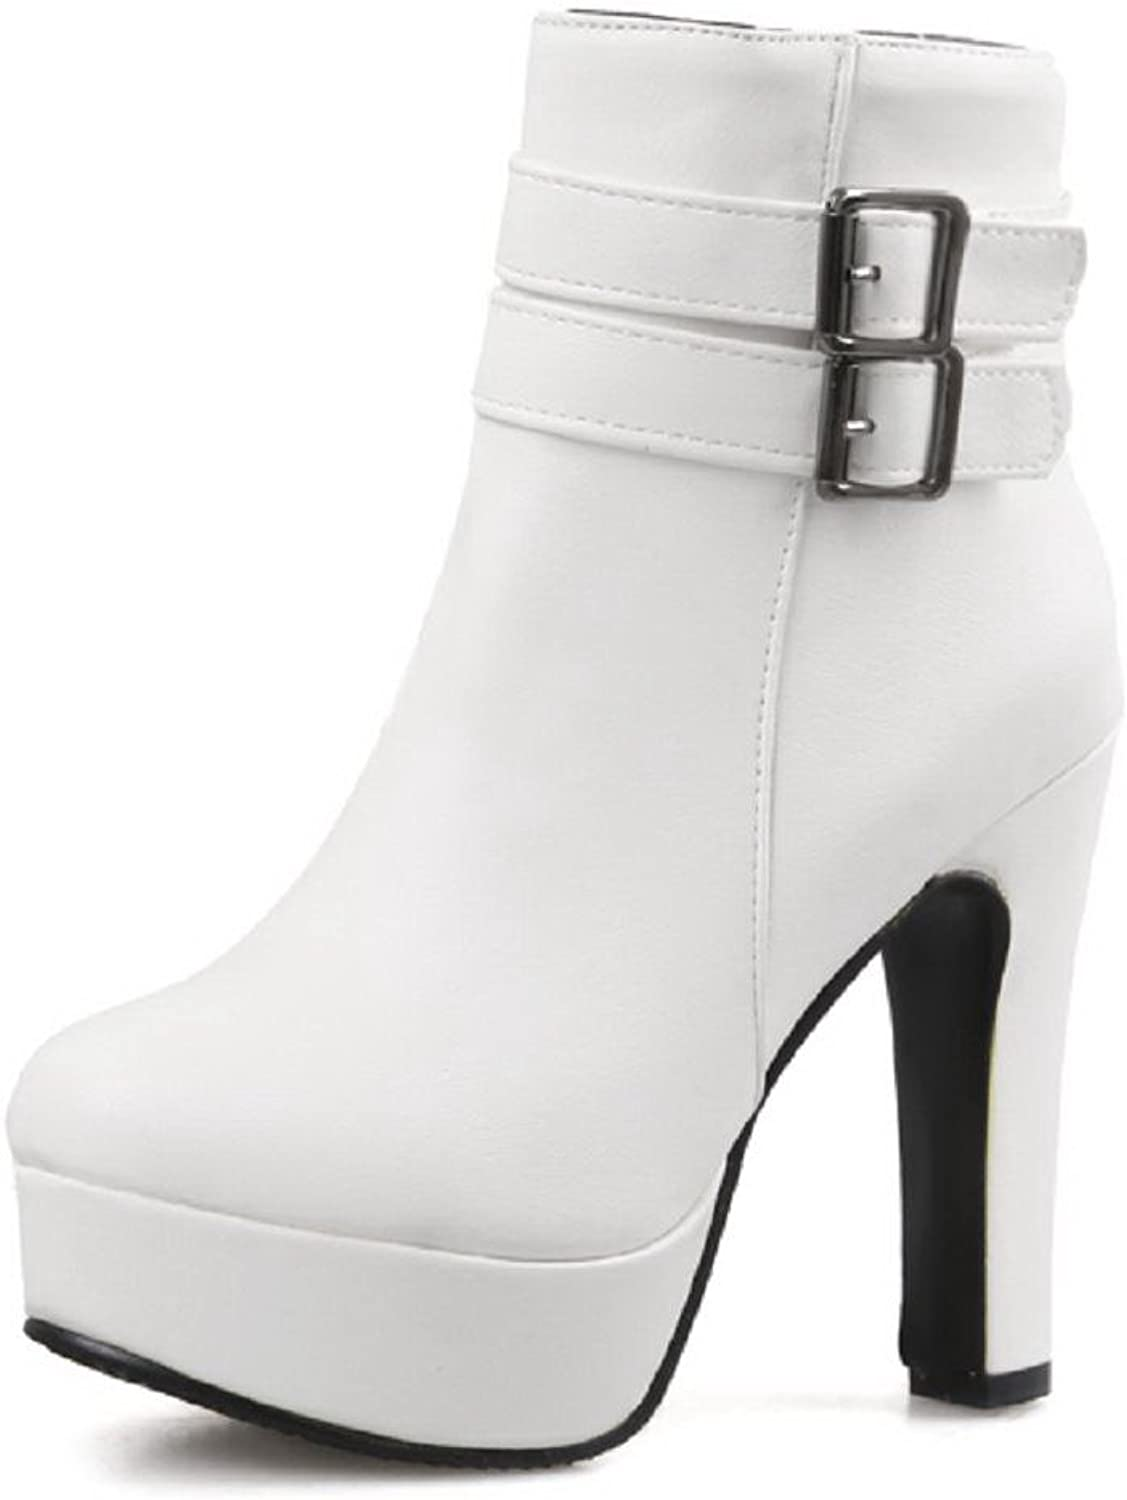 AllhqFashion Women's Solid High Heels Round Closed Toe Pu Zipper Boots with Metal